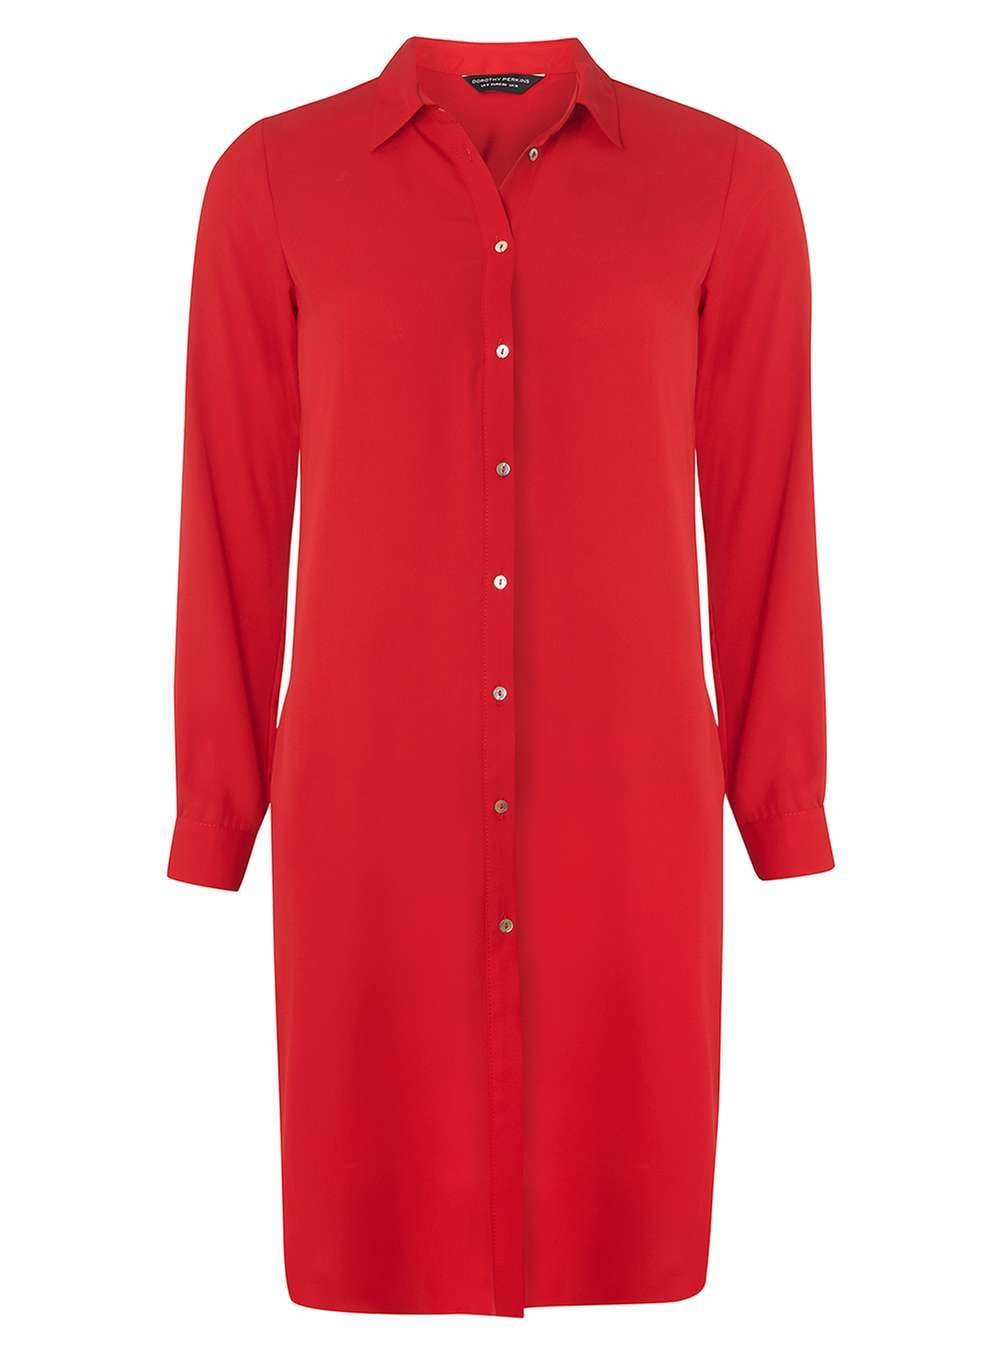 Womens Red Maxi Split Shirt Red - neckline: shirt collar/peter pan/zip with opening; pattern: plain; style: shirt; predominant colour: true red; occasions: casual; fibres: polyester/polyamide - 100%; fit: body skimming; length: mid thigh; sleeve length: long sleeve; sleeve style: standard; pattern type: fabric; texture group: other - light to midweight; season: a/w 2016; wardrobe: highlight